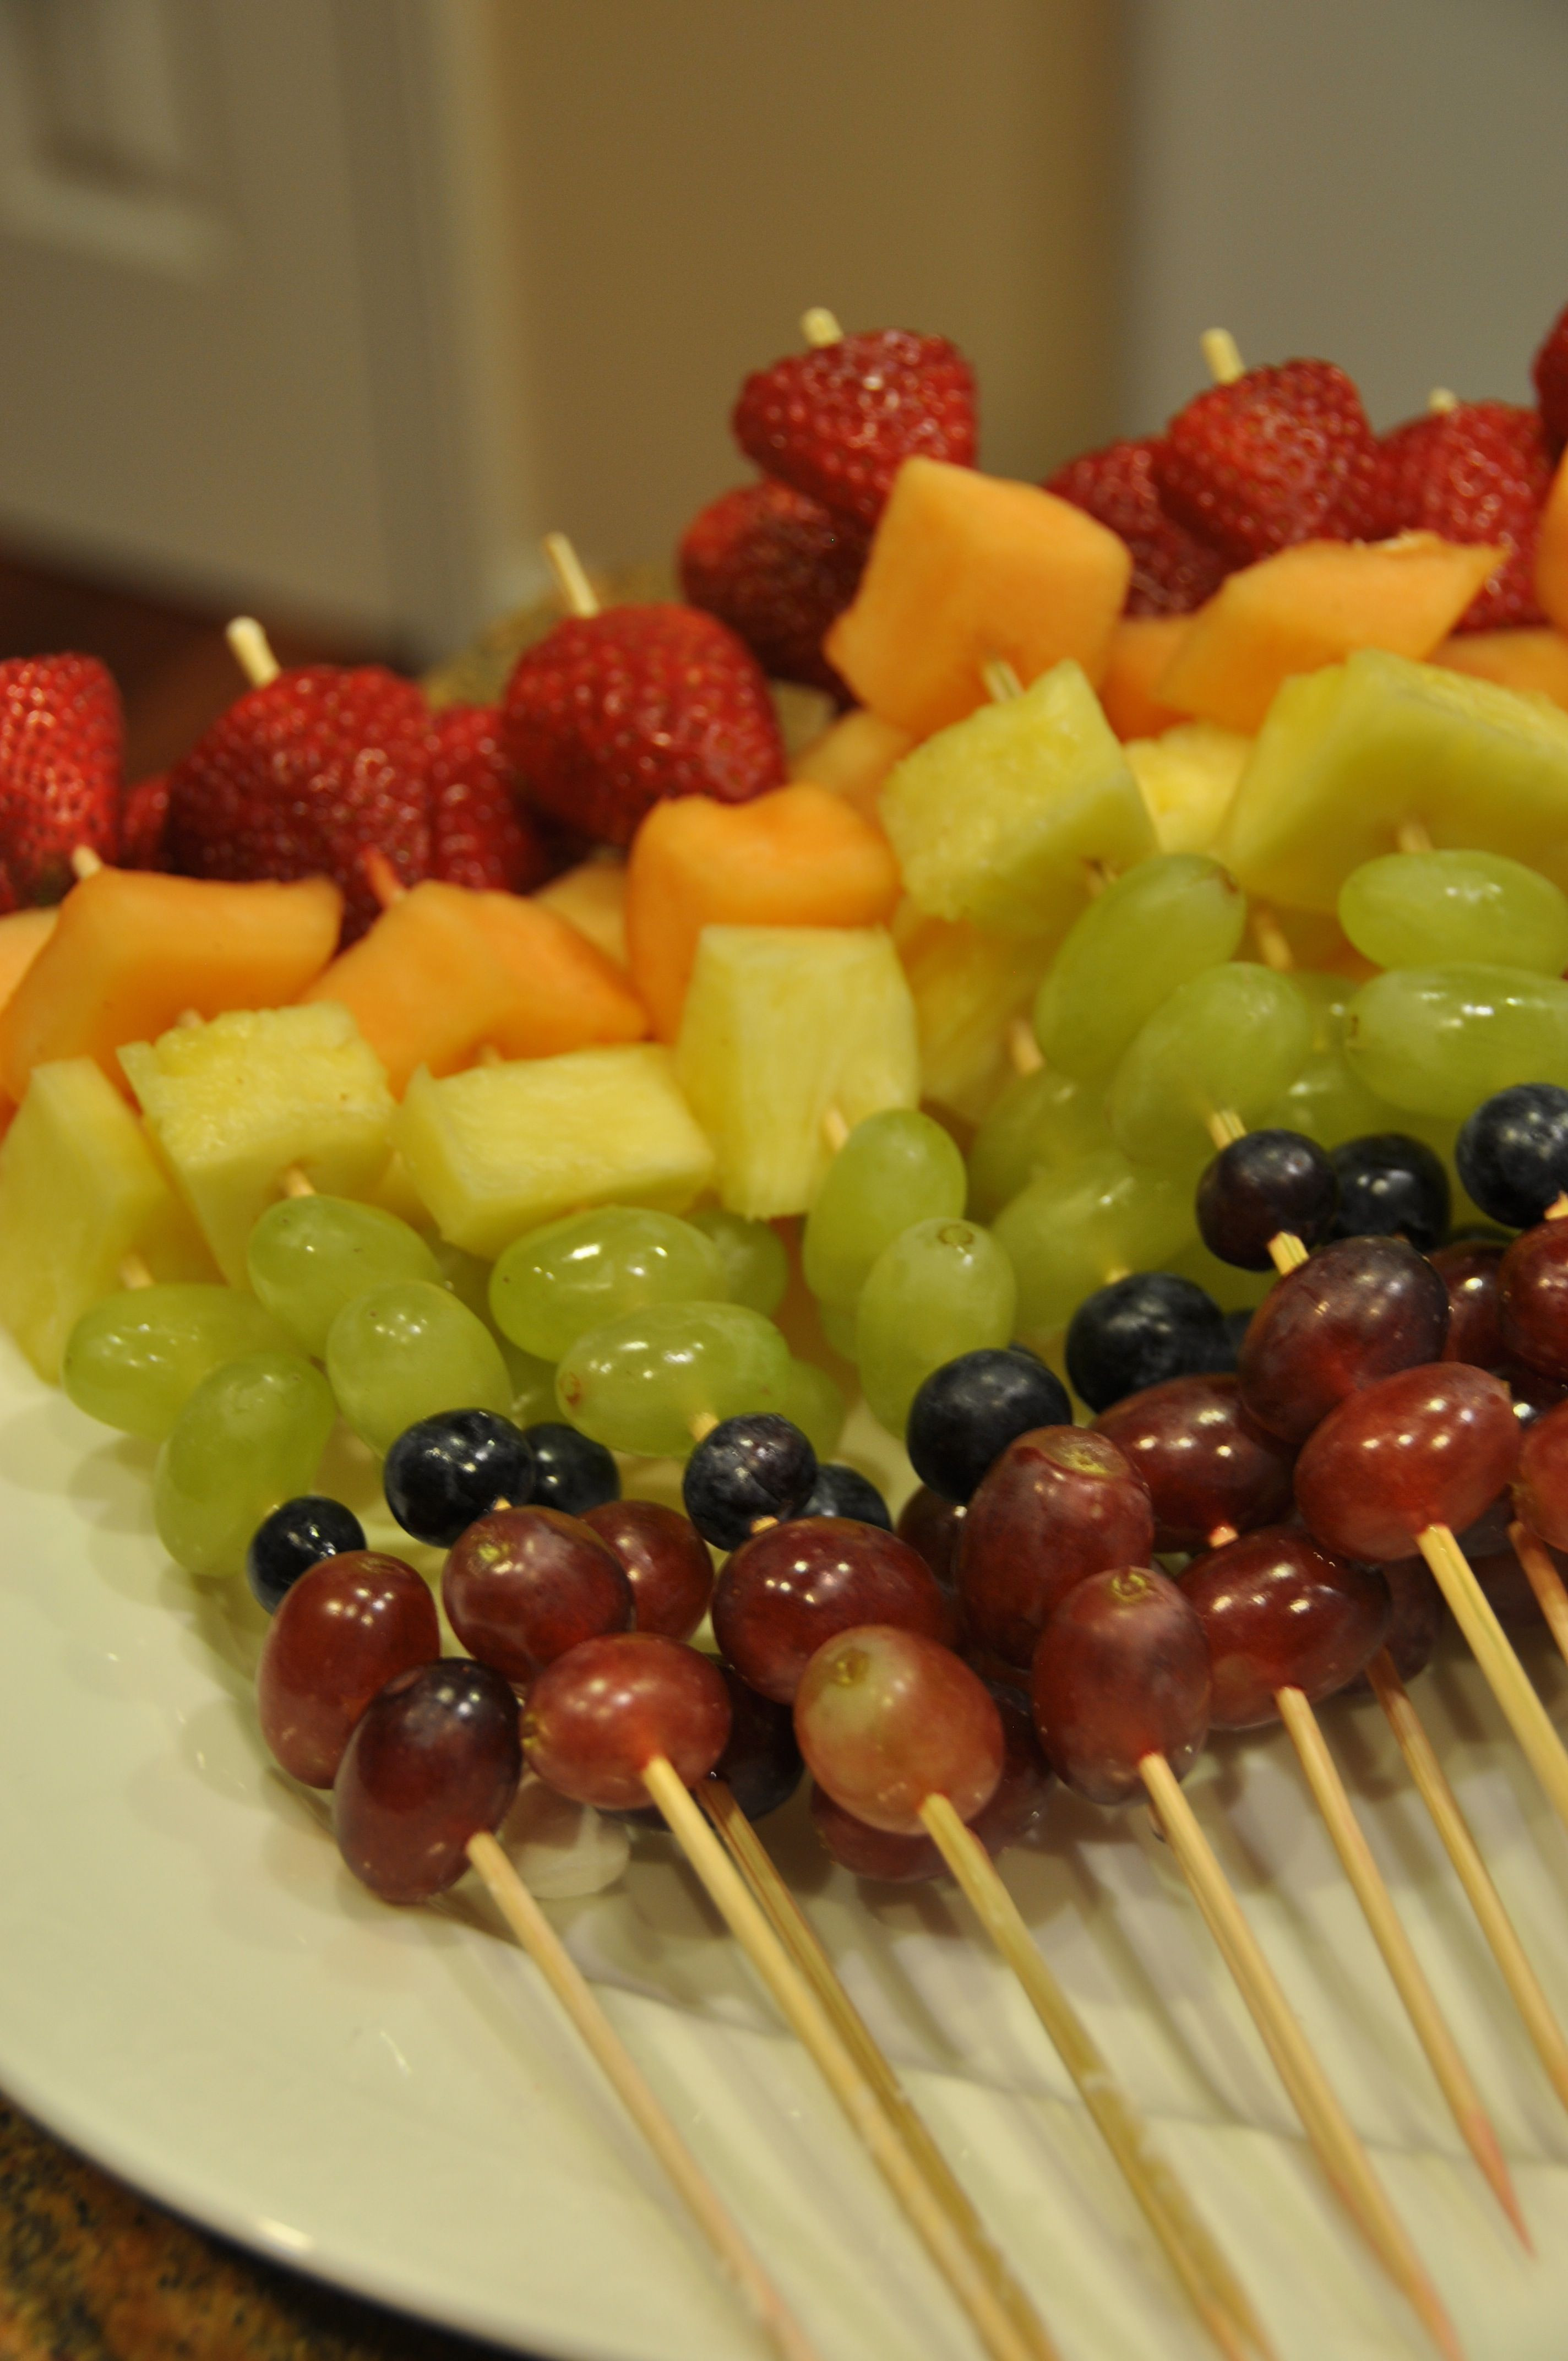 Healthy Birthday Desserts For Adults  Kid s Birthday snack idea HEALTHY instead of JUNKY